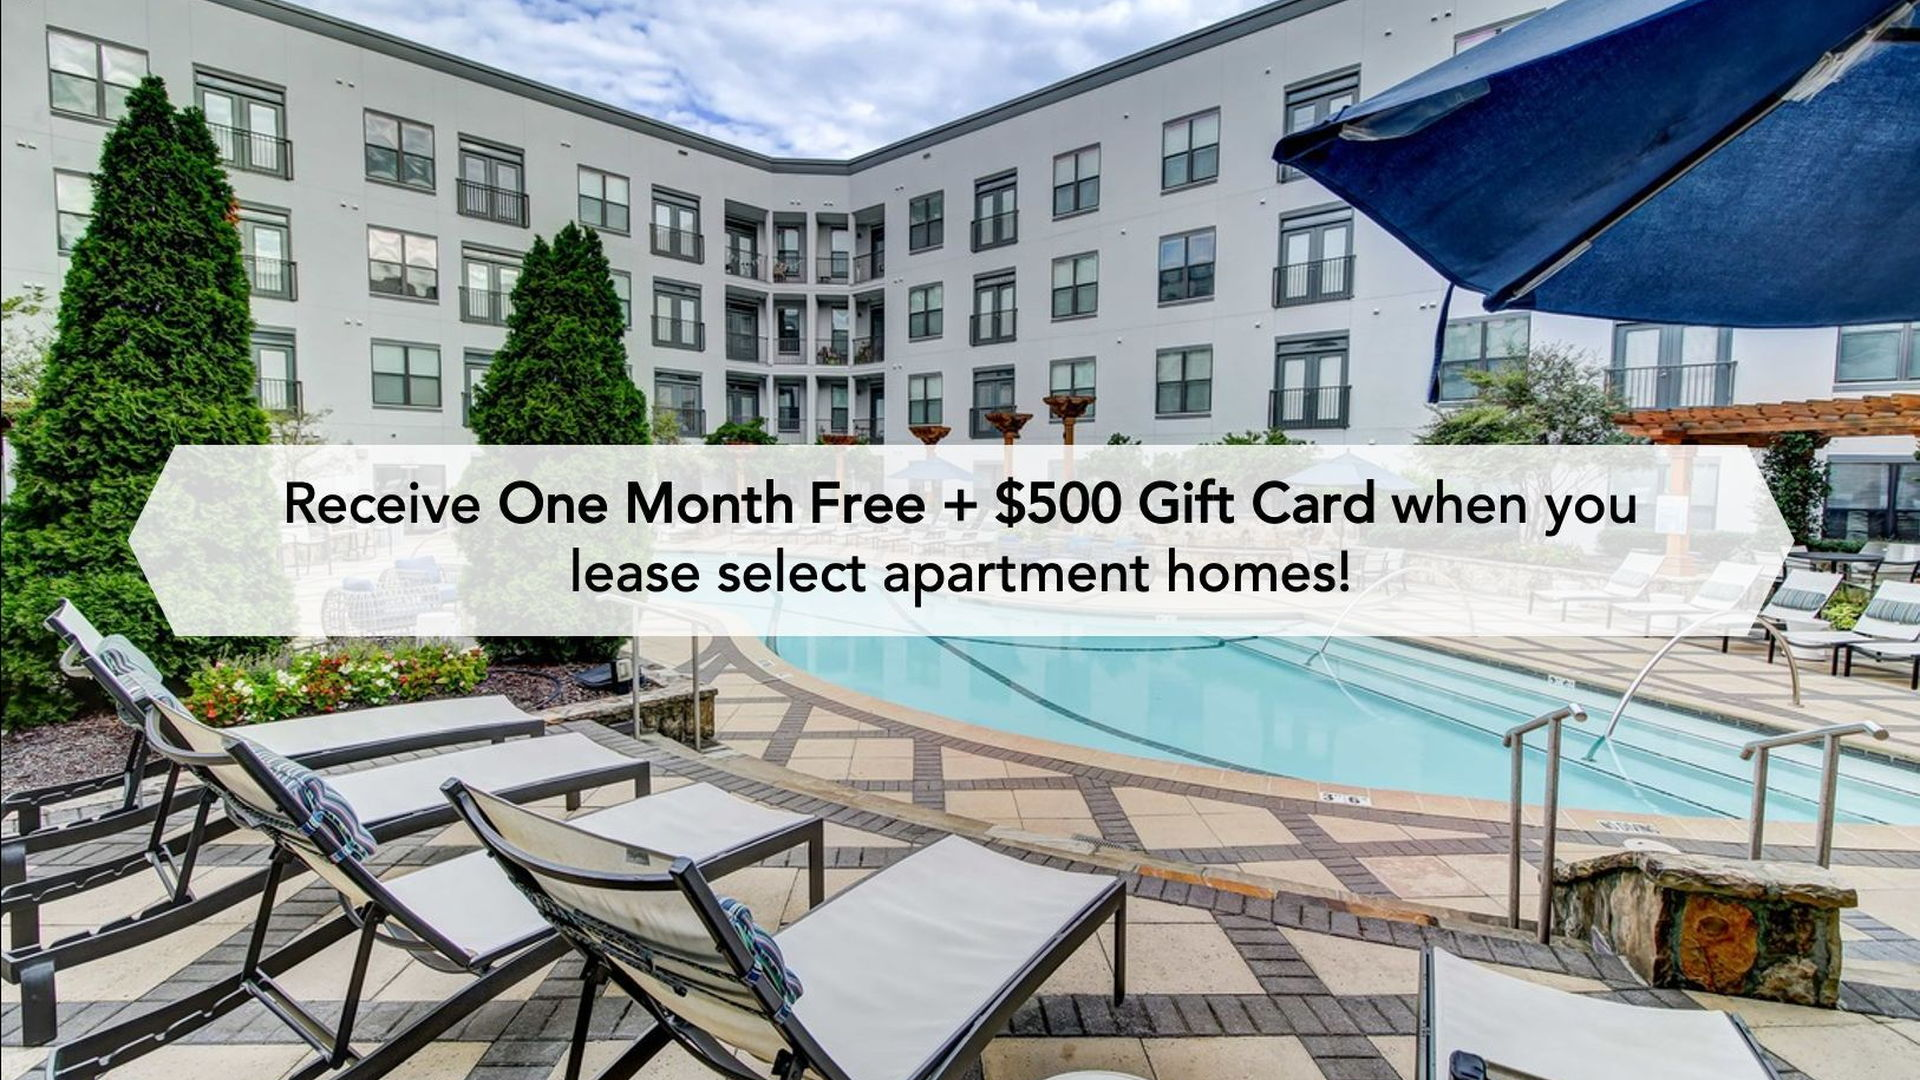 One Bedroom Apartments Raleigh Nc Under 500 | www.resnooze.com